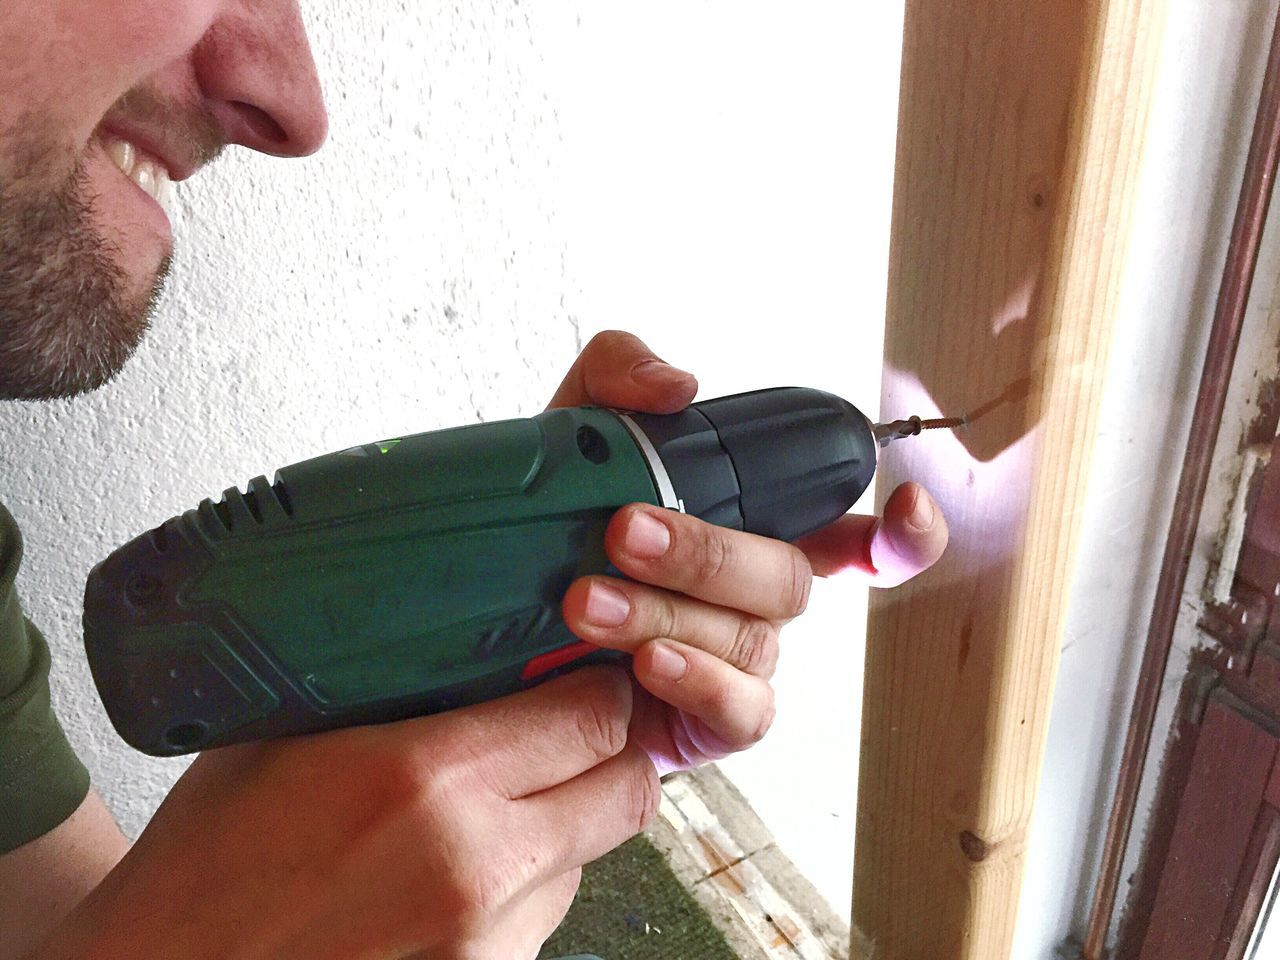 Hands At Work Electric Screwdriver DIY Hands On